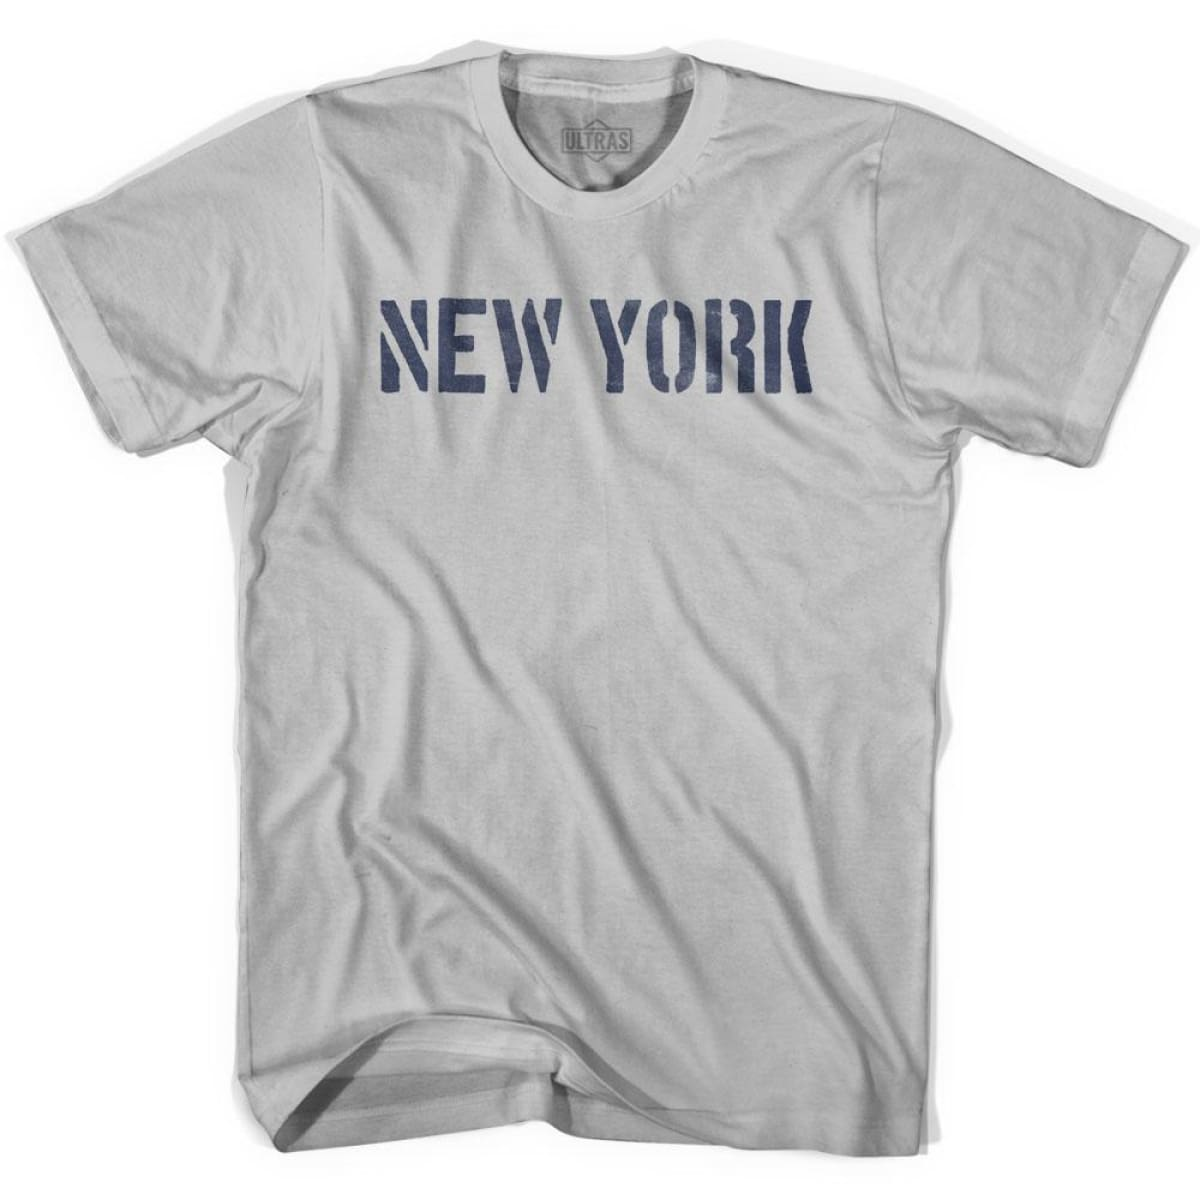 New York State Stencil Adult Cotton T-shirt - Cool Grey / Adult Small - Stencil State